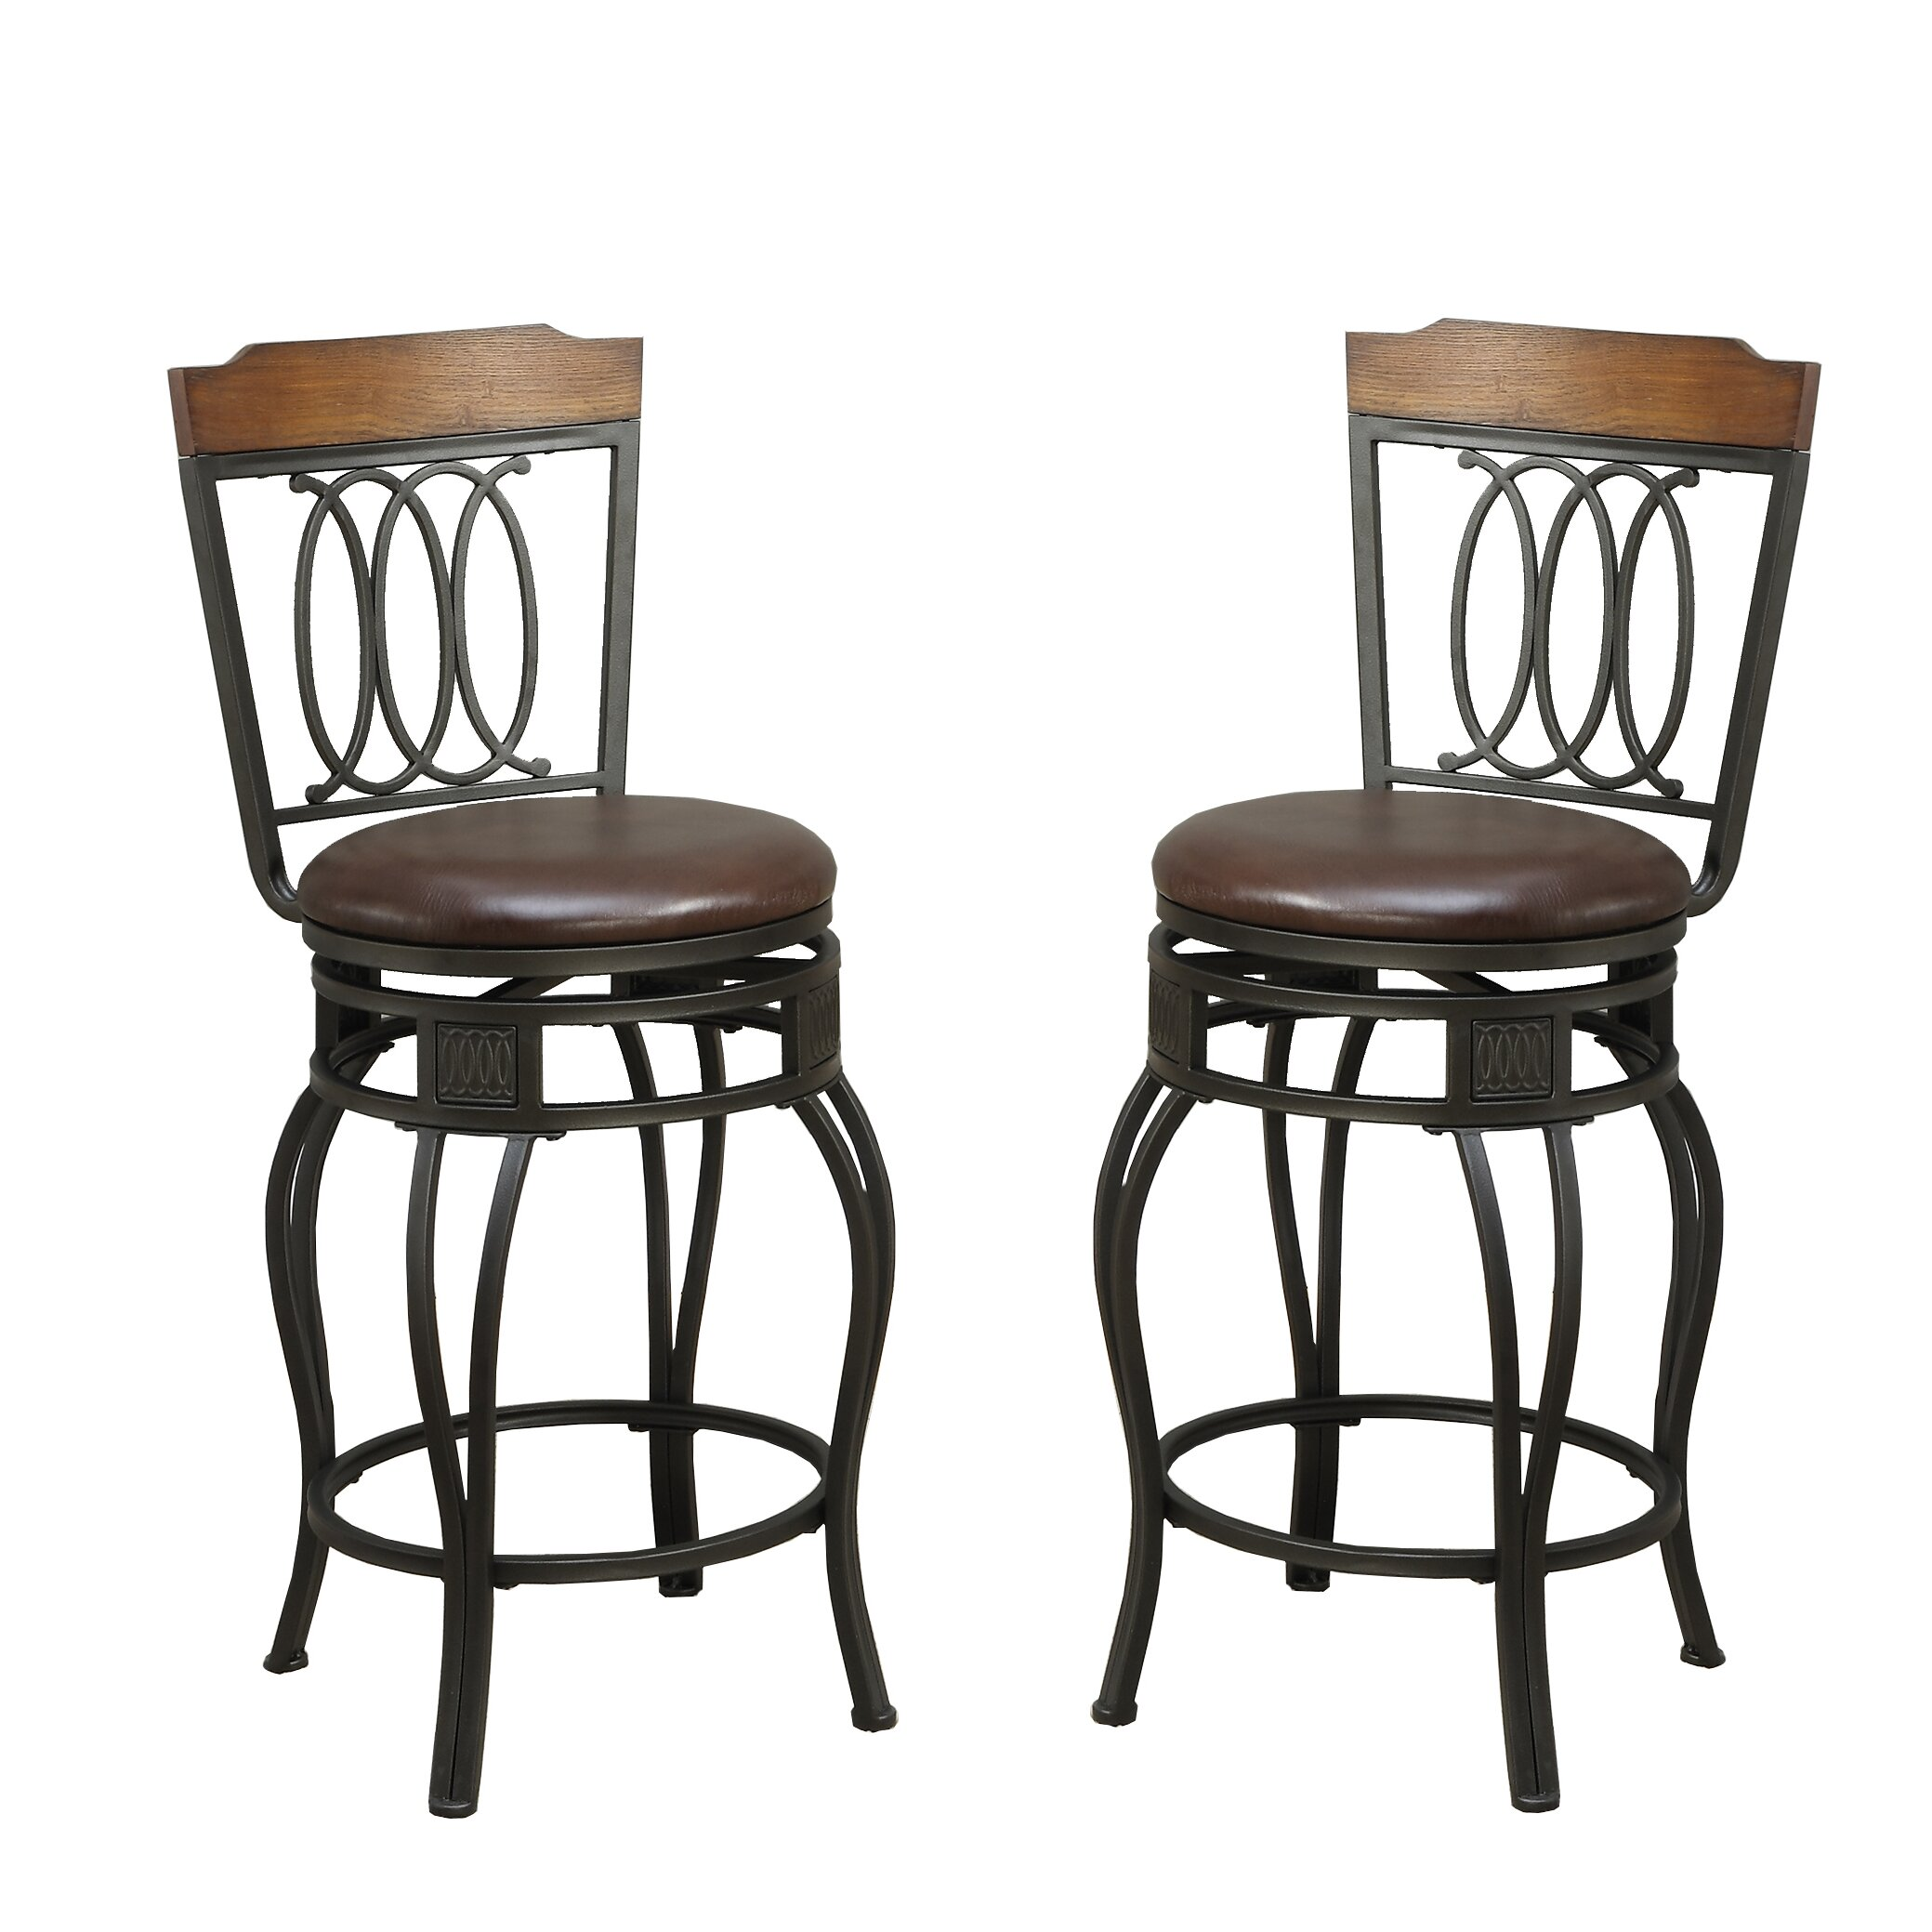 Kartell Counter Stool Charles Ghost Stool 2 Pack